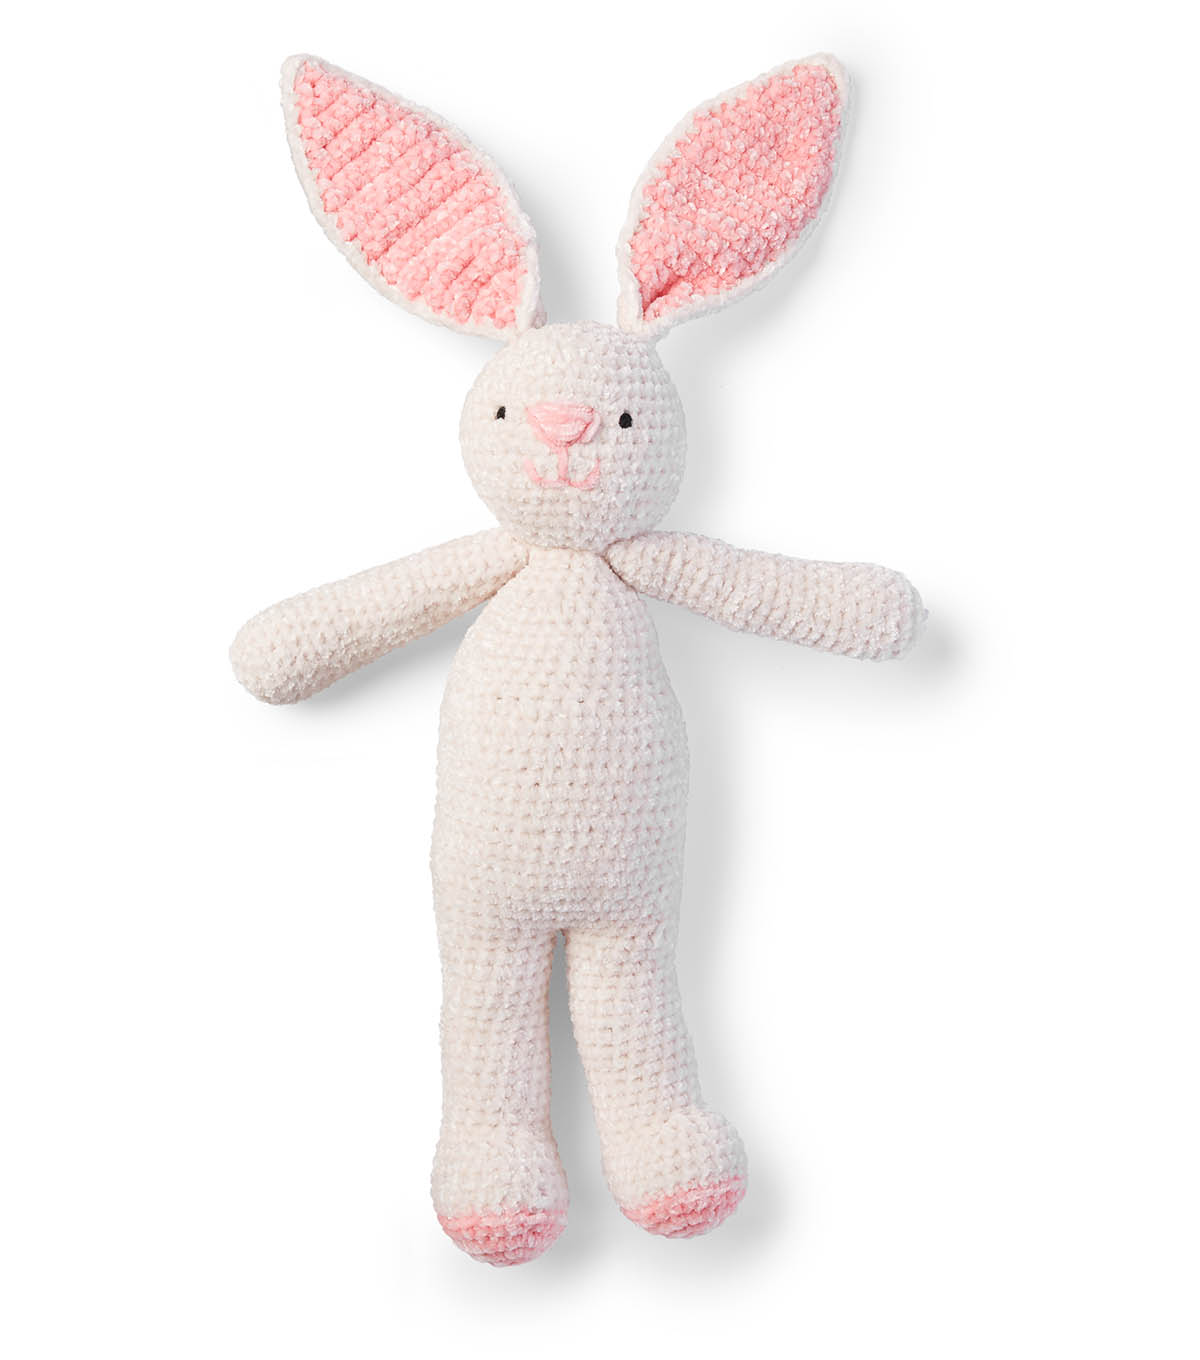 Velvet Bunny Amigurumi Free Crochet Pattern - Crochet For You ... | 1360x1200